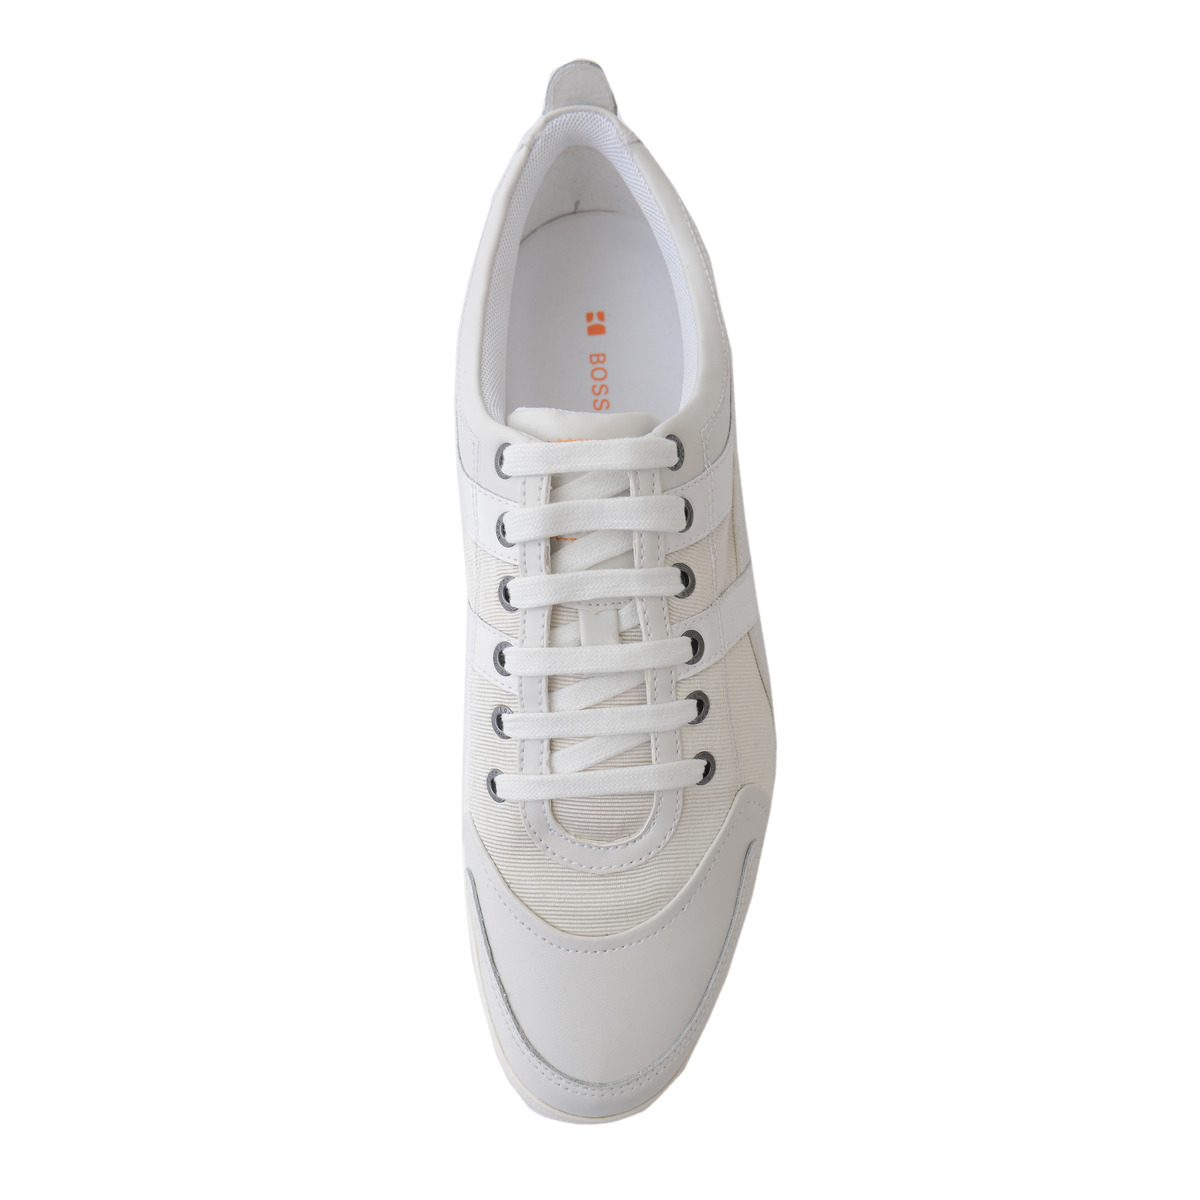 hugo boss orange orodos v white leather fashion sneakers. Black Bedroom Furniture Sets. Home Design Ideas